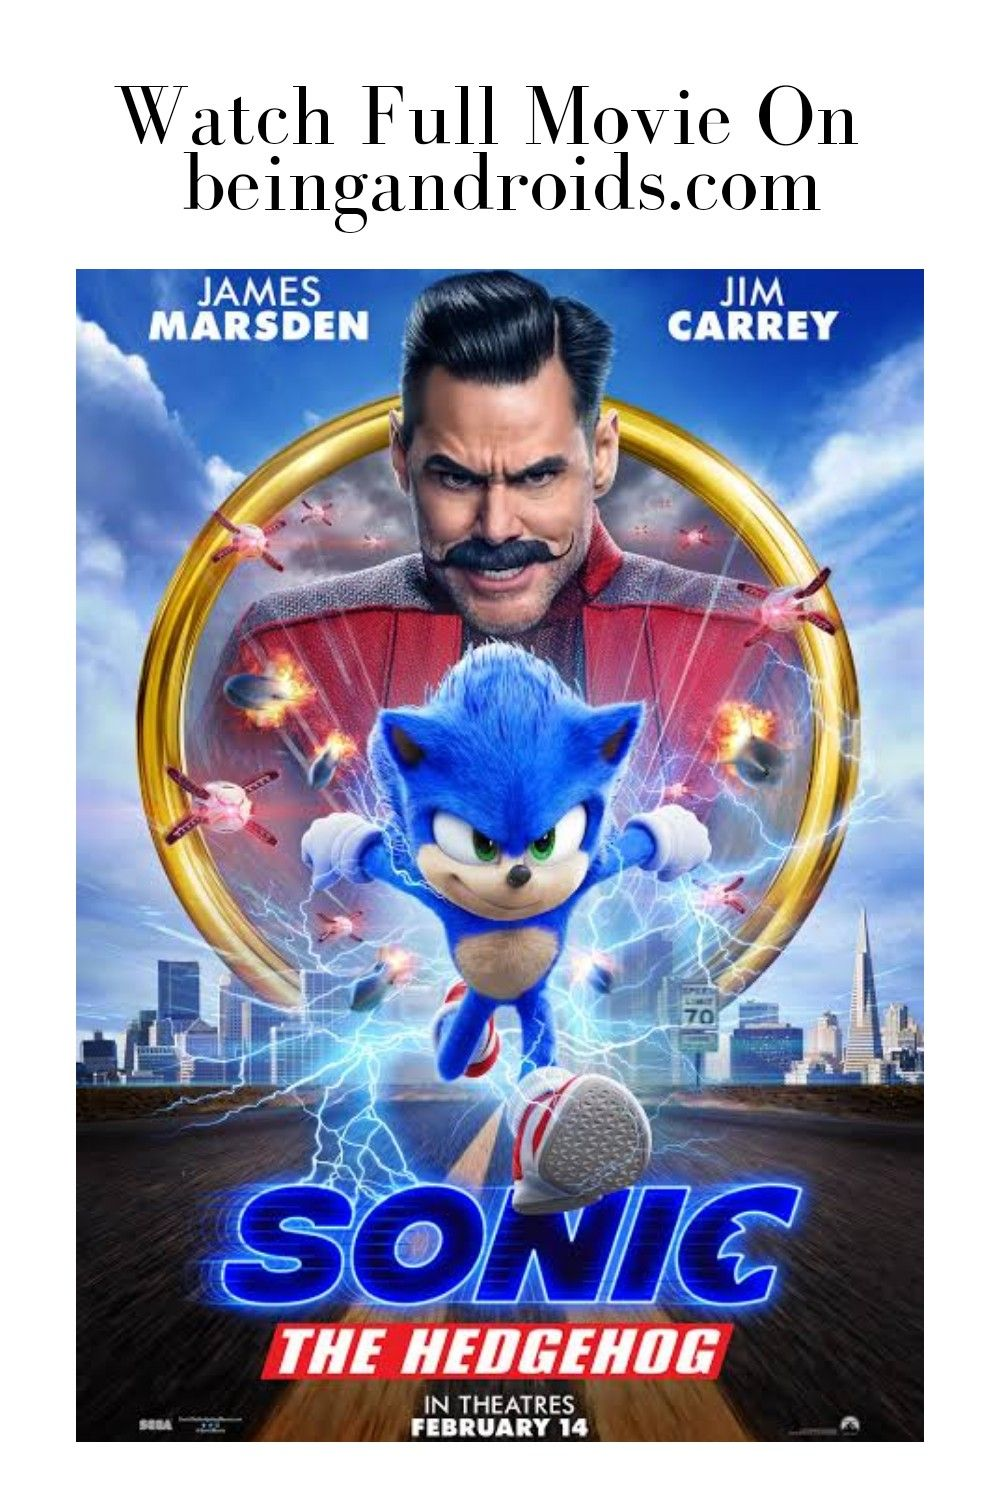 Sonic The Hedgehog 2020 Movie Watch Online Funny Memes Dankest Memes Funny Pictures